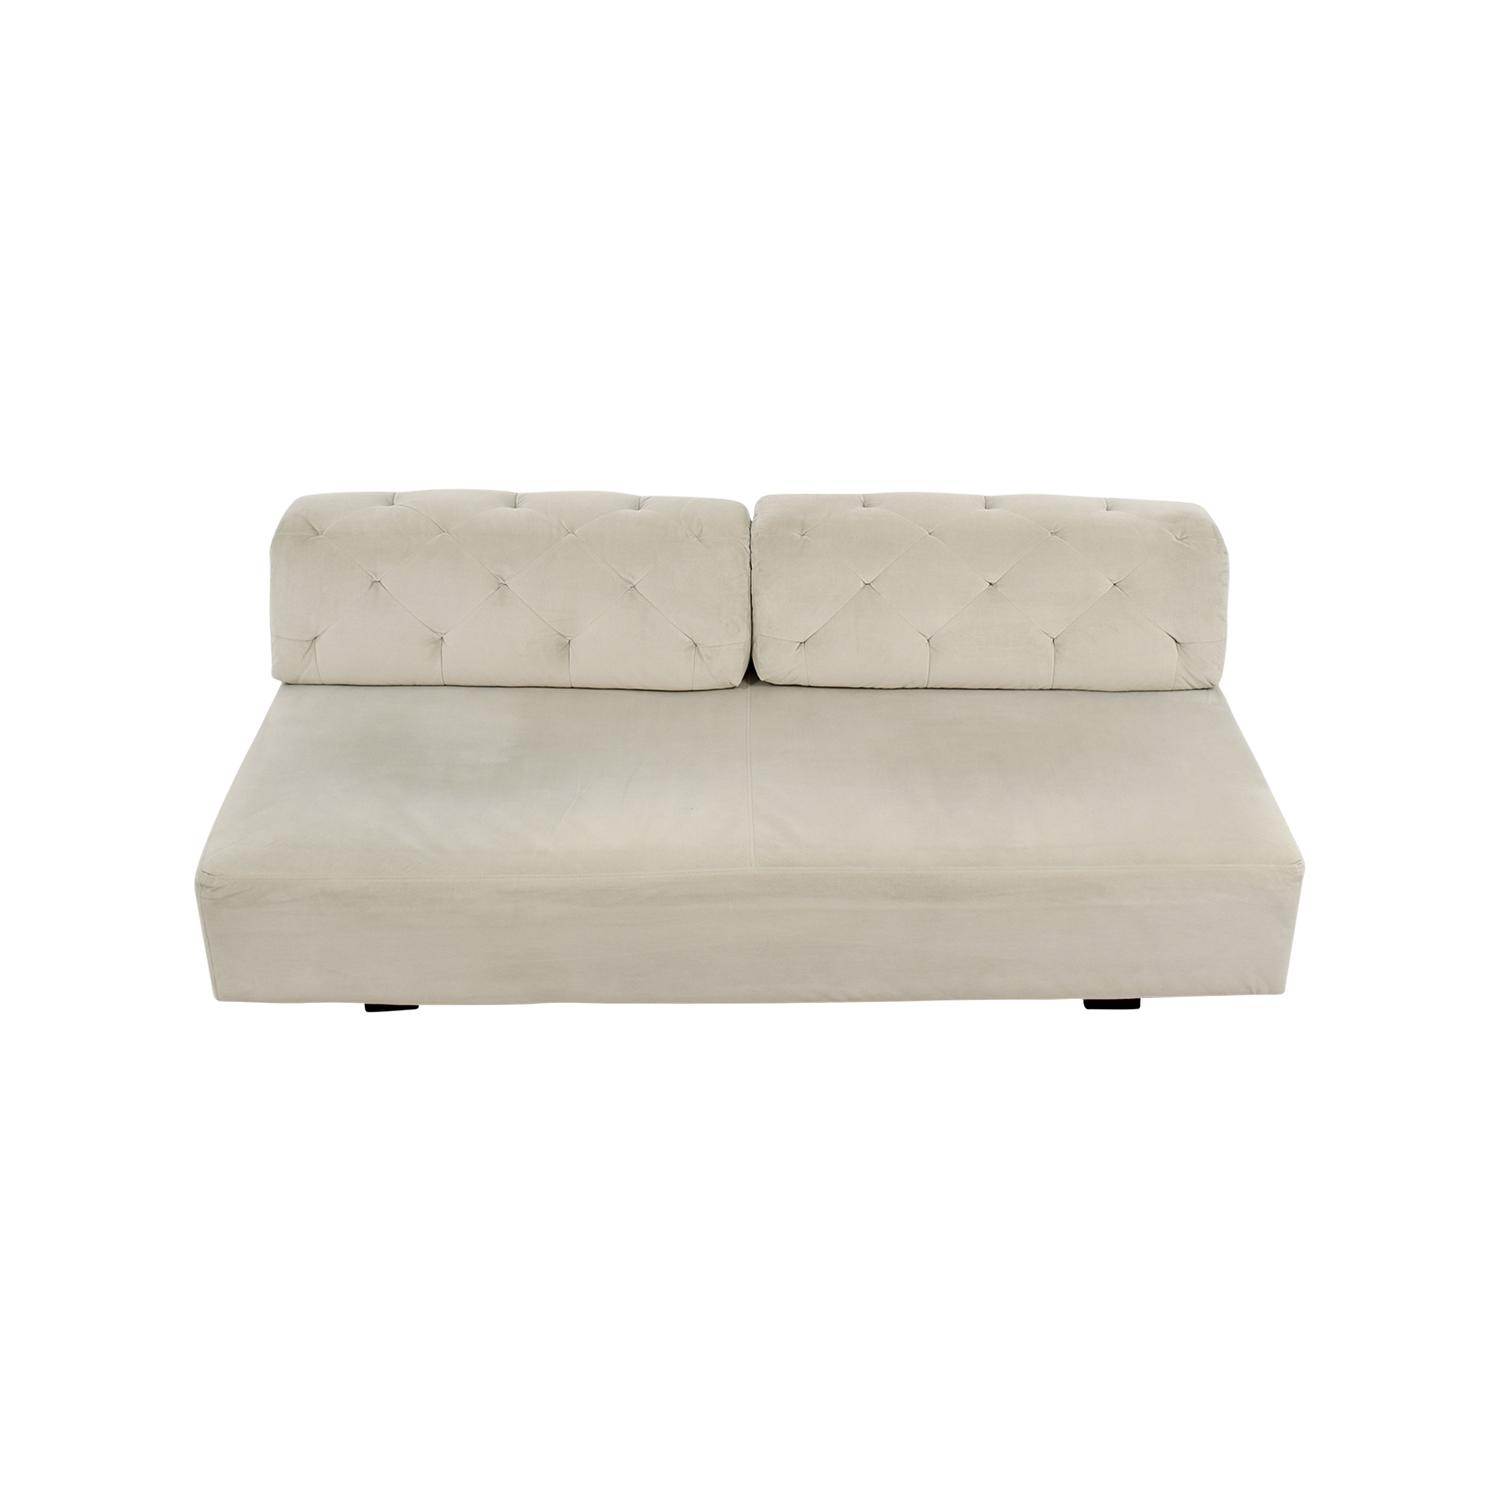 Classic Sofas: Used Classic Sofas For Sale Within Classic Sofas For Sale (View 13 of 20)